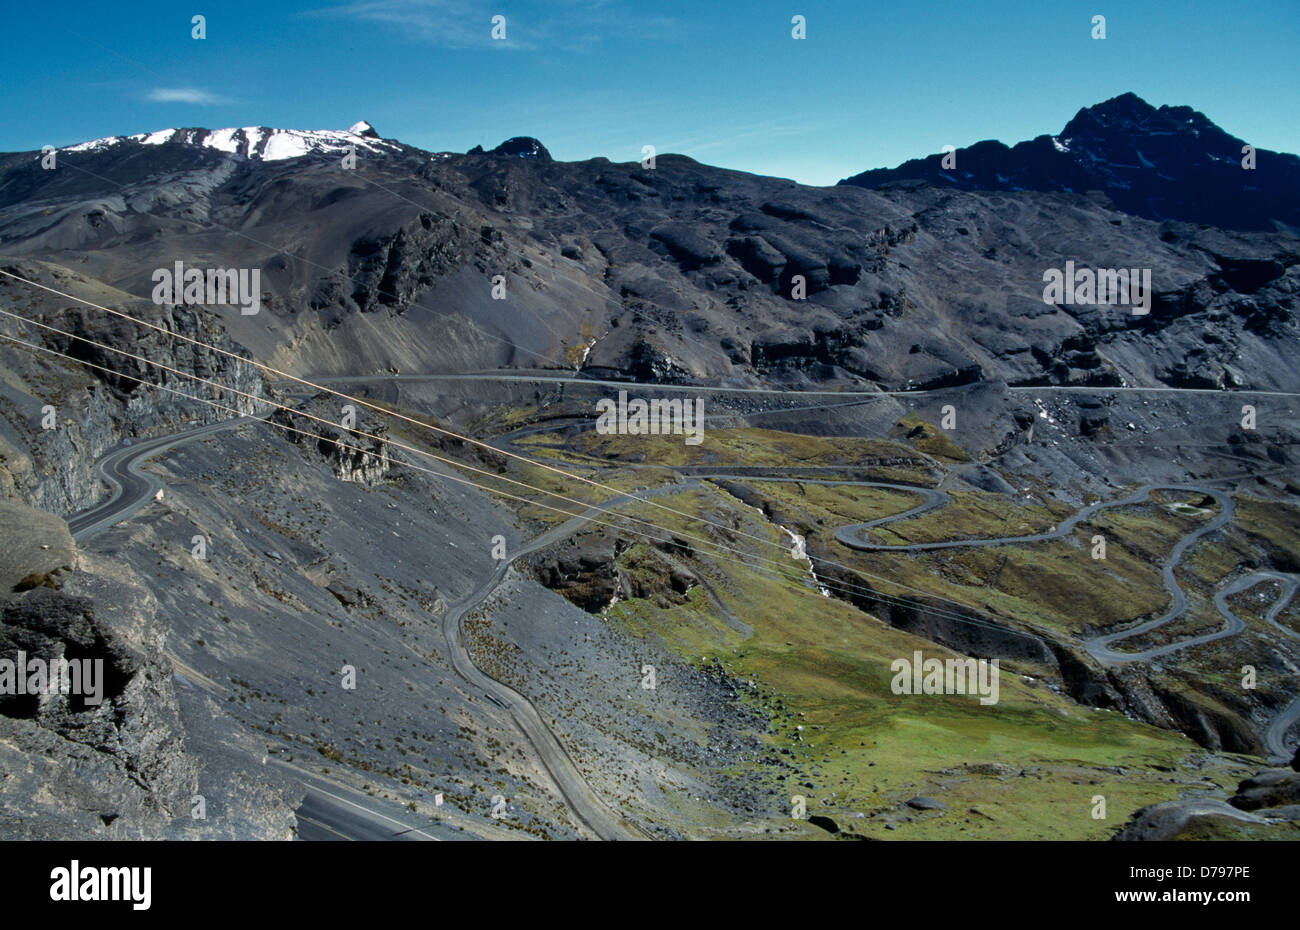 Bolivia Cordillera Real Mountains La Cumbre Pass Eroded Slopes - Stock Image